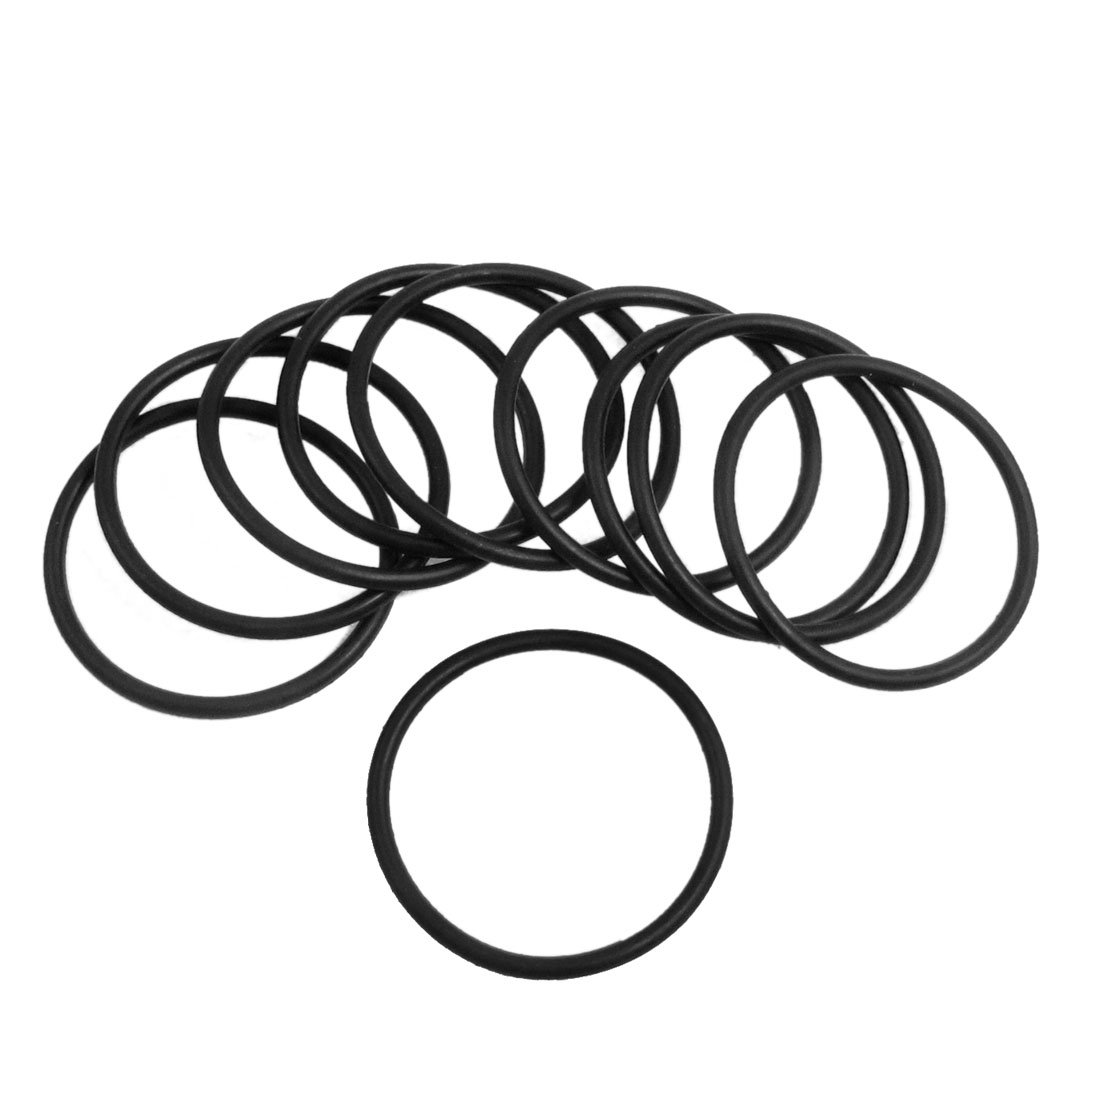 10 Pcs 38mm x 2.4mm Black Silicone O Rings Oil Seals Gaskets